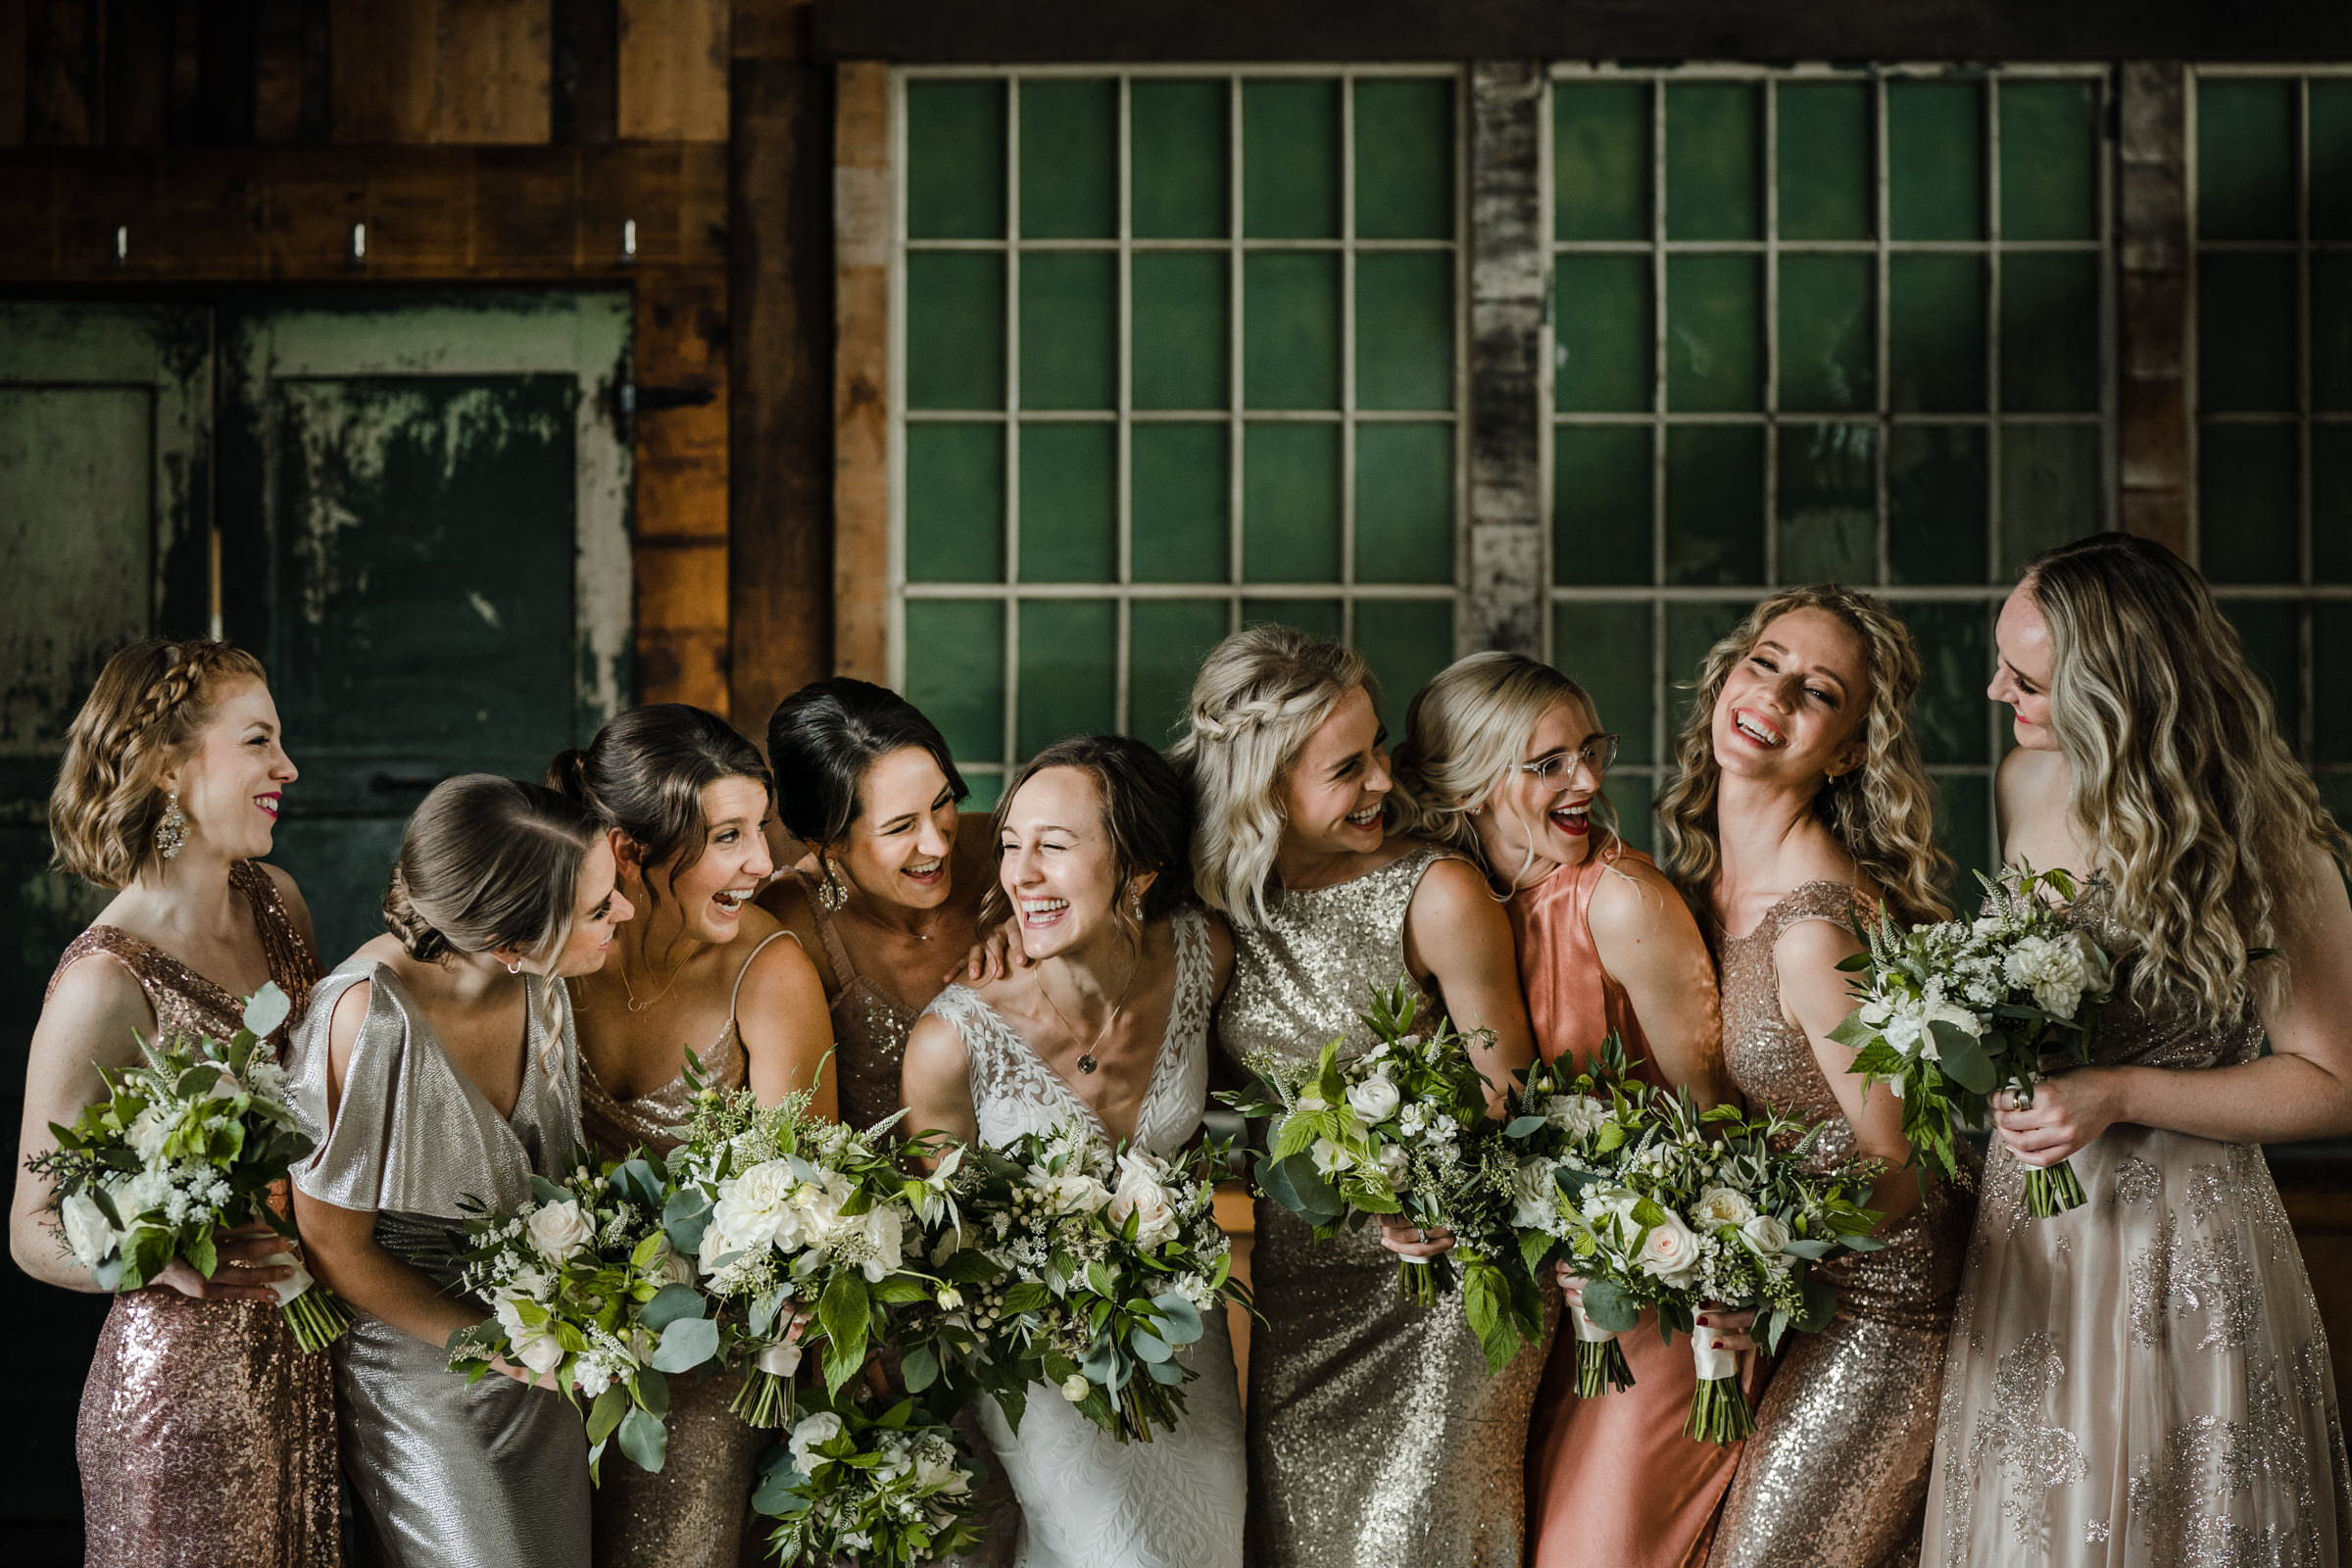 Bridesmaids hamming it up - photo by Sasha Reiko Photography